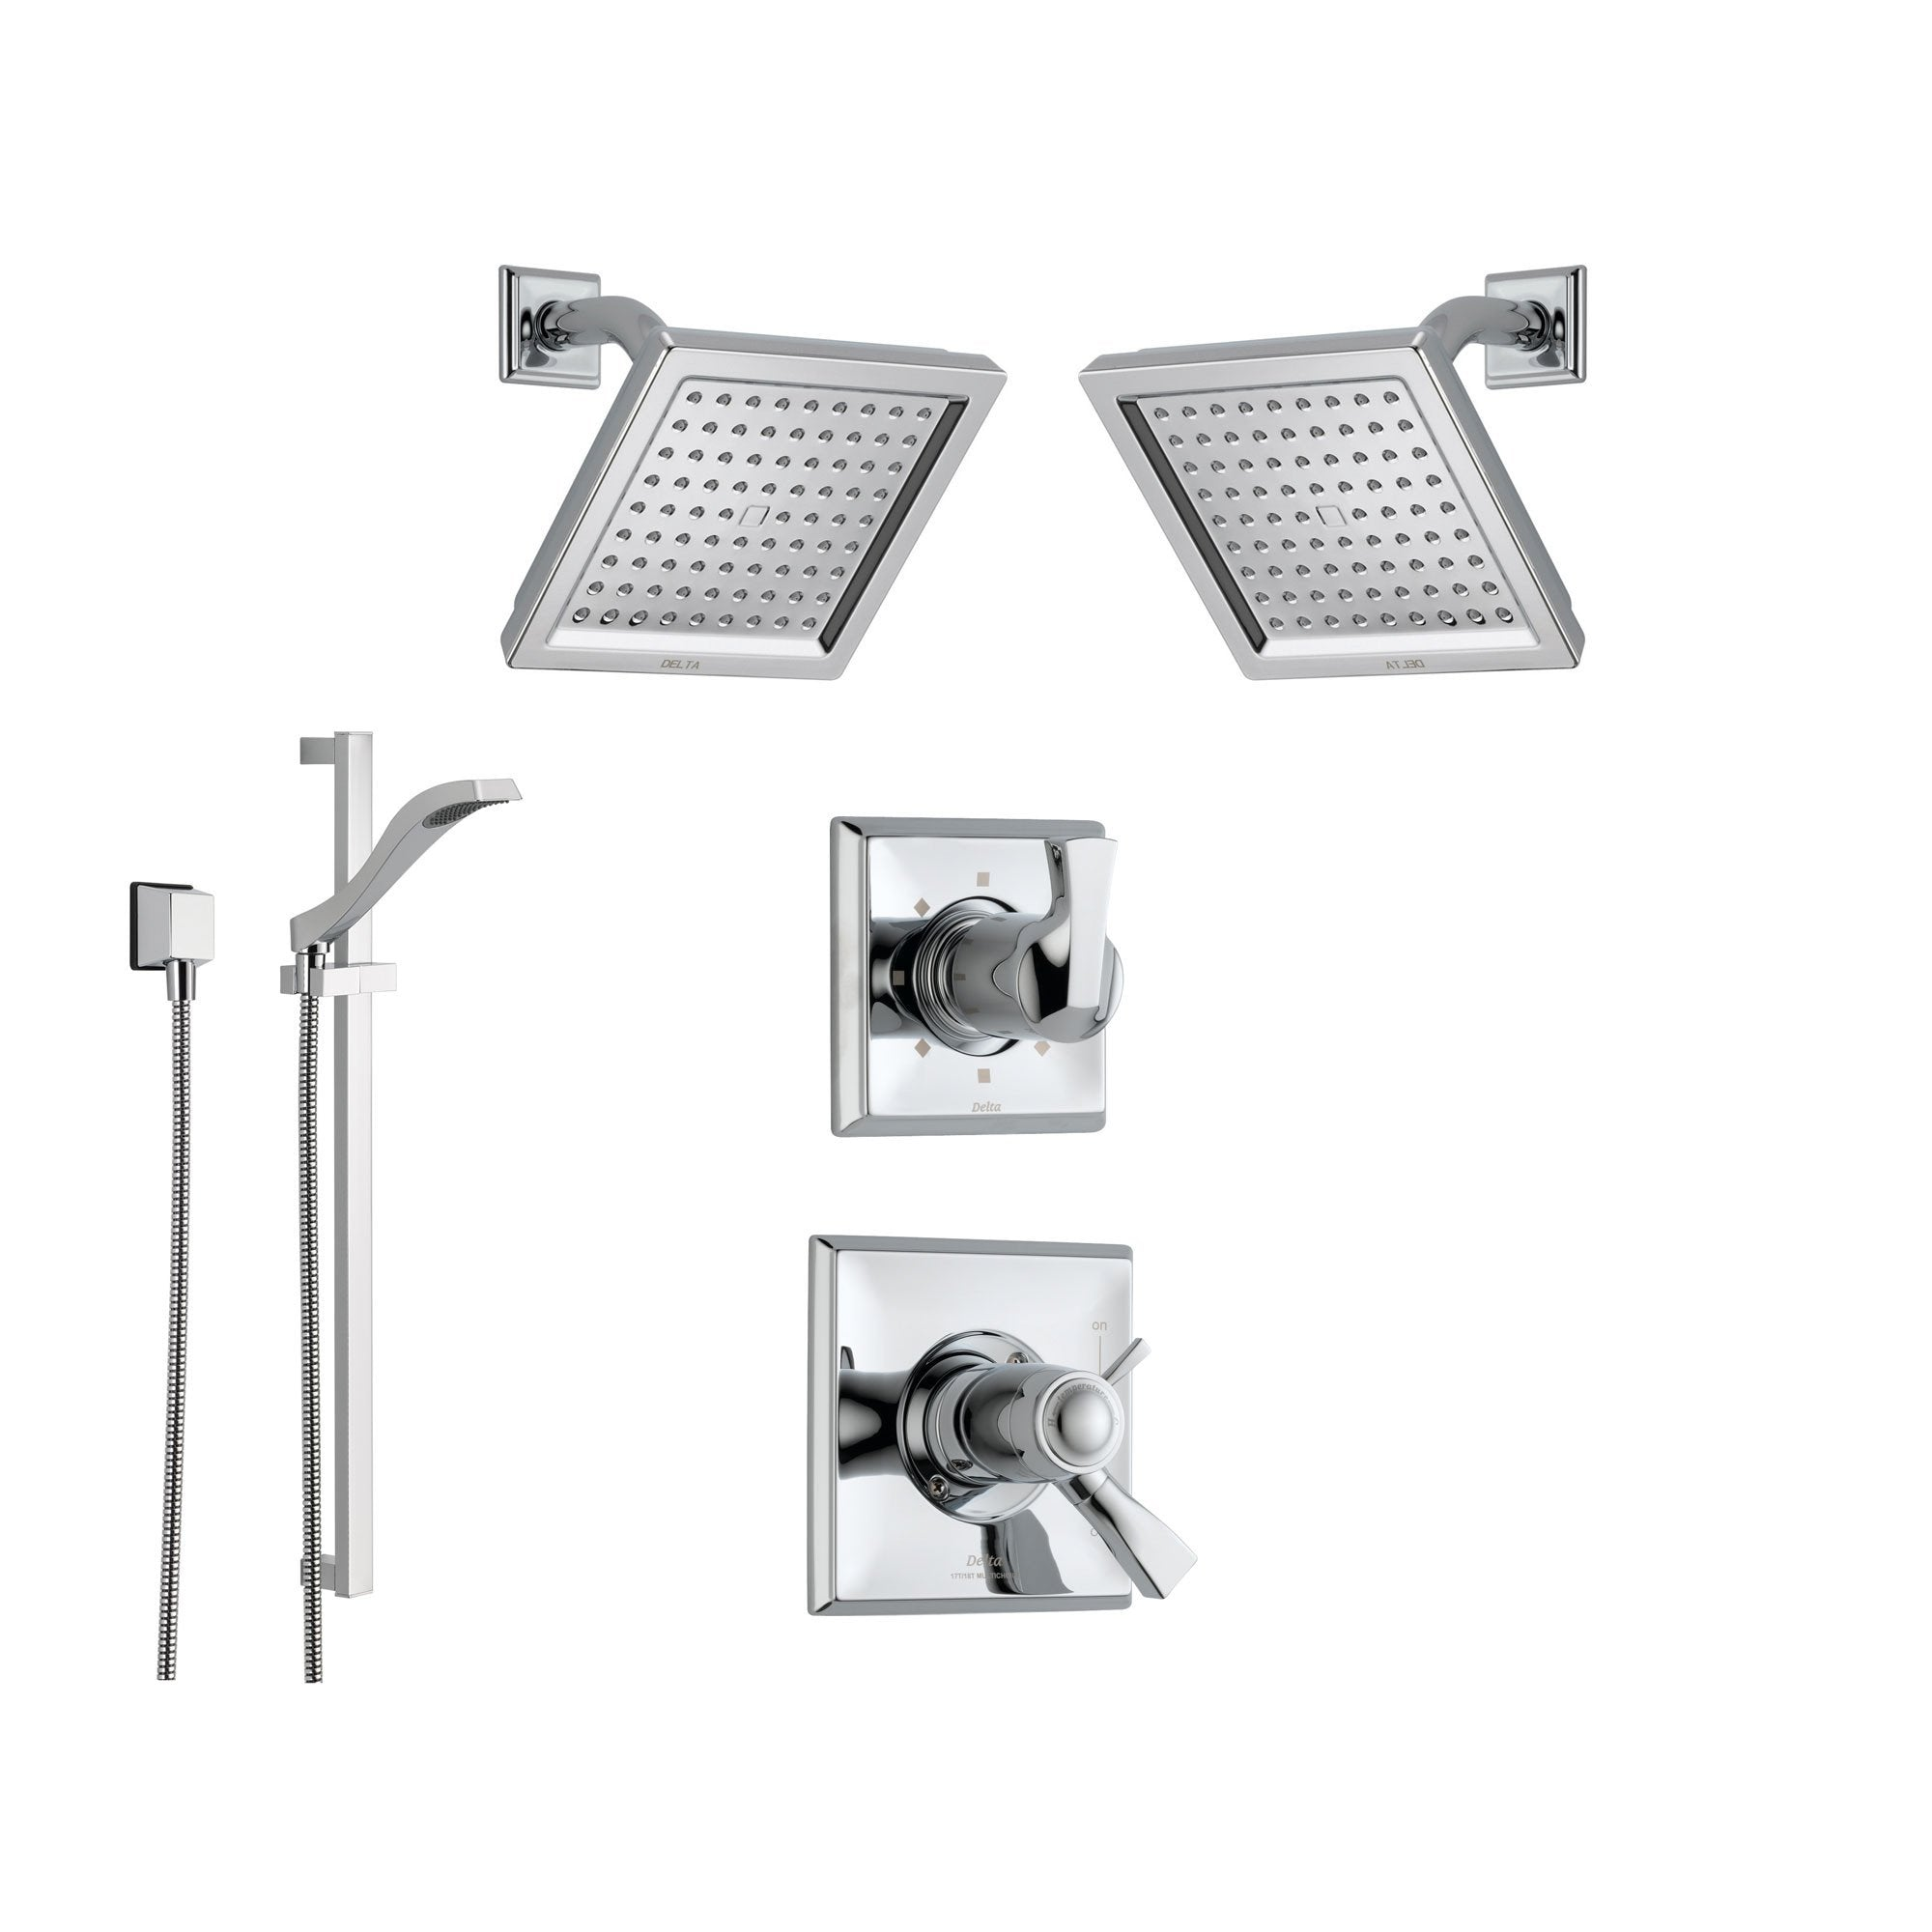 Delta Dryden Chrome Shower System with Thermostatic Shower Handle, 6-setting Diverter, 2 Modern Square Showerheads, and Handheld Shower SS17T5195